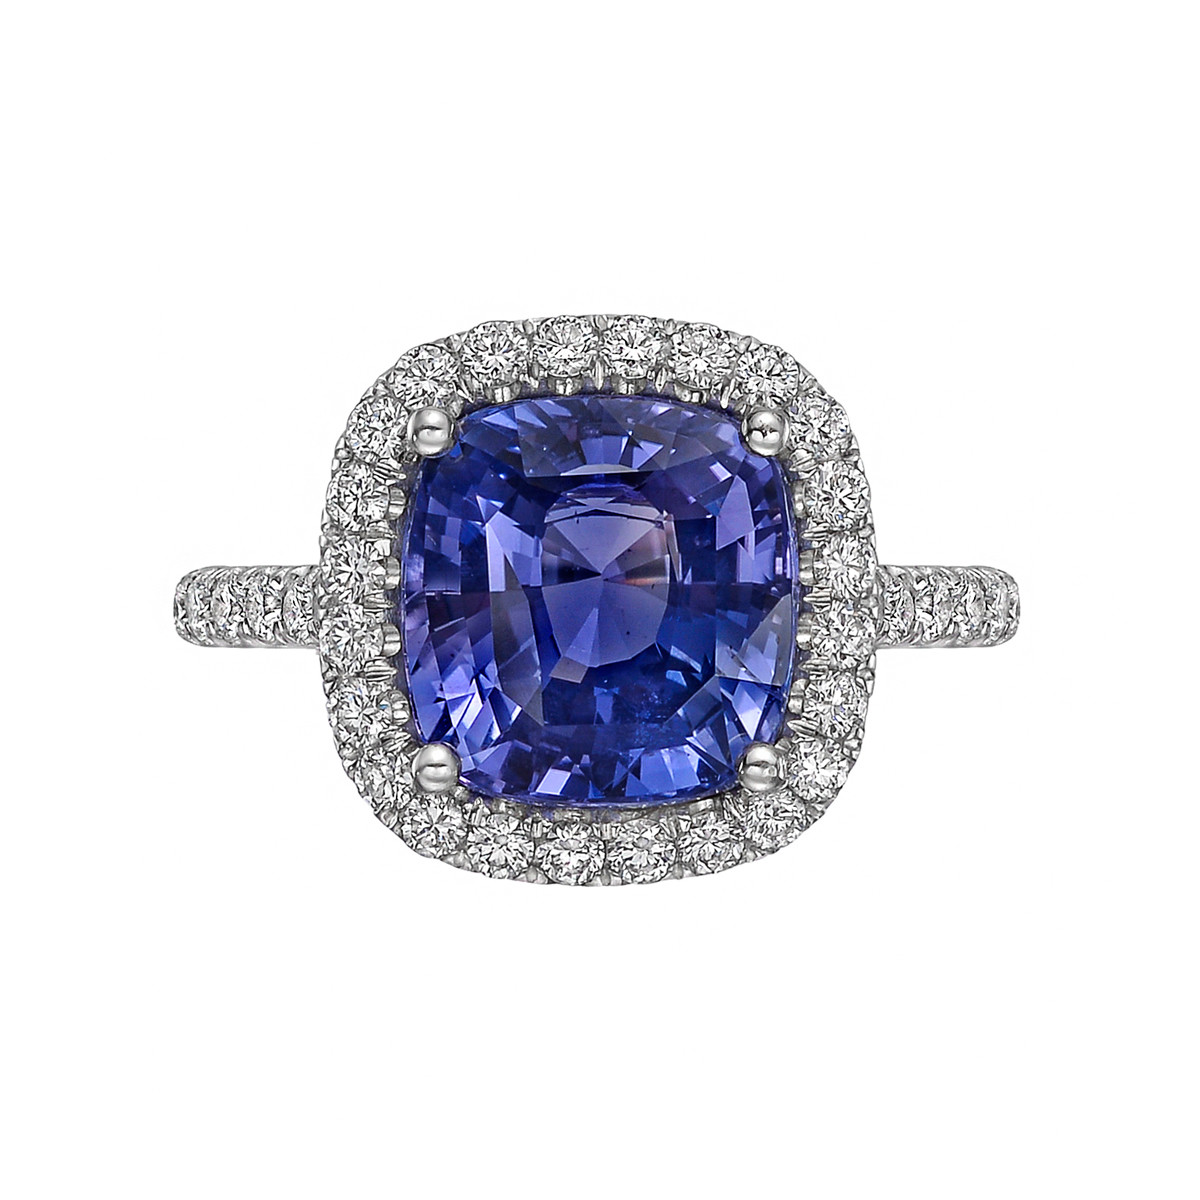 5.05ct Violet-Blue Sapphire & Diamond Halo Ring